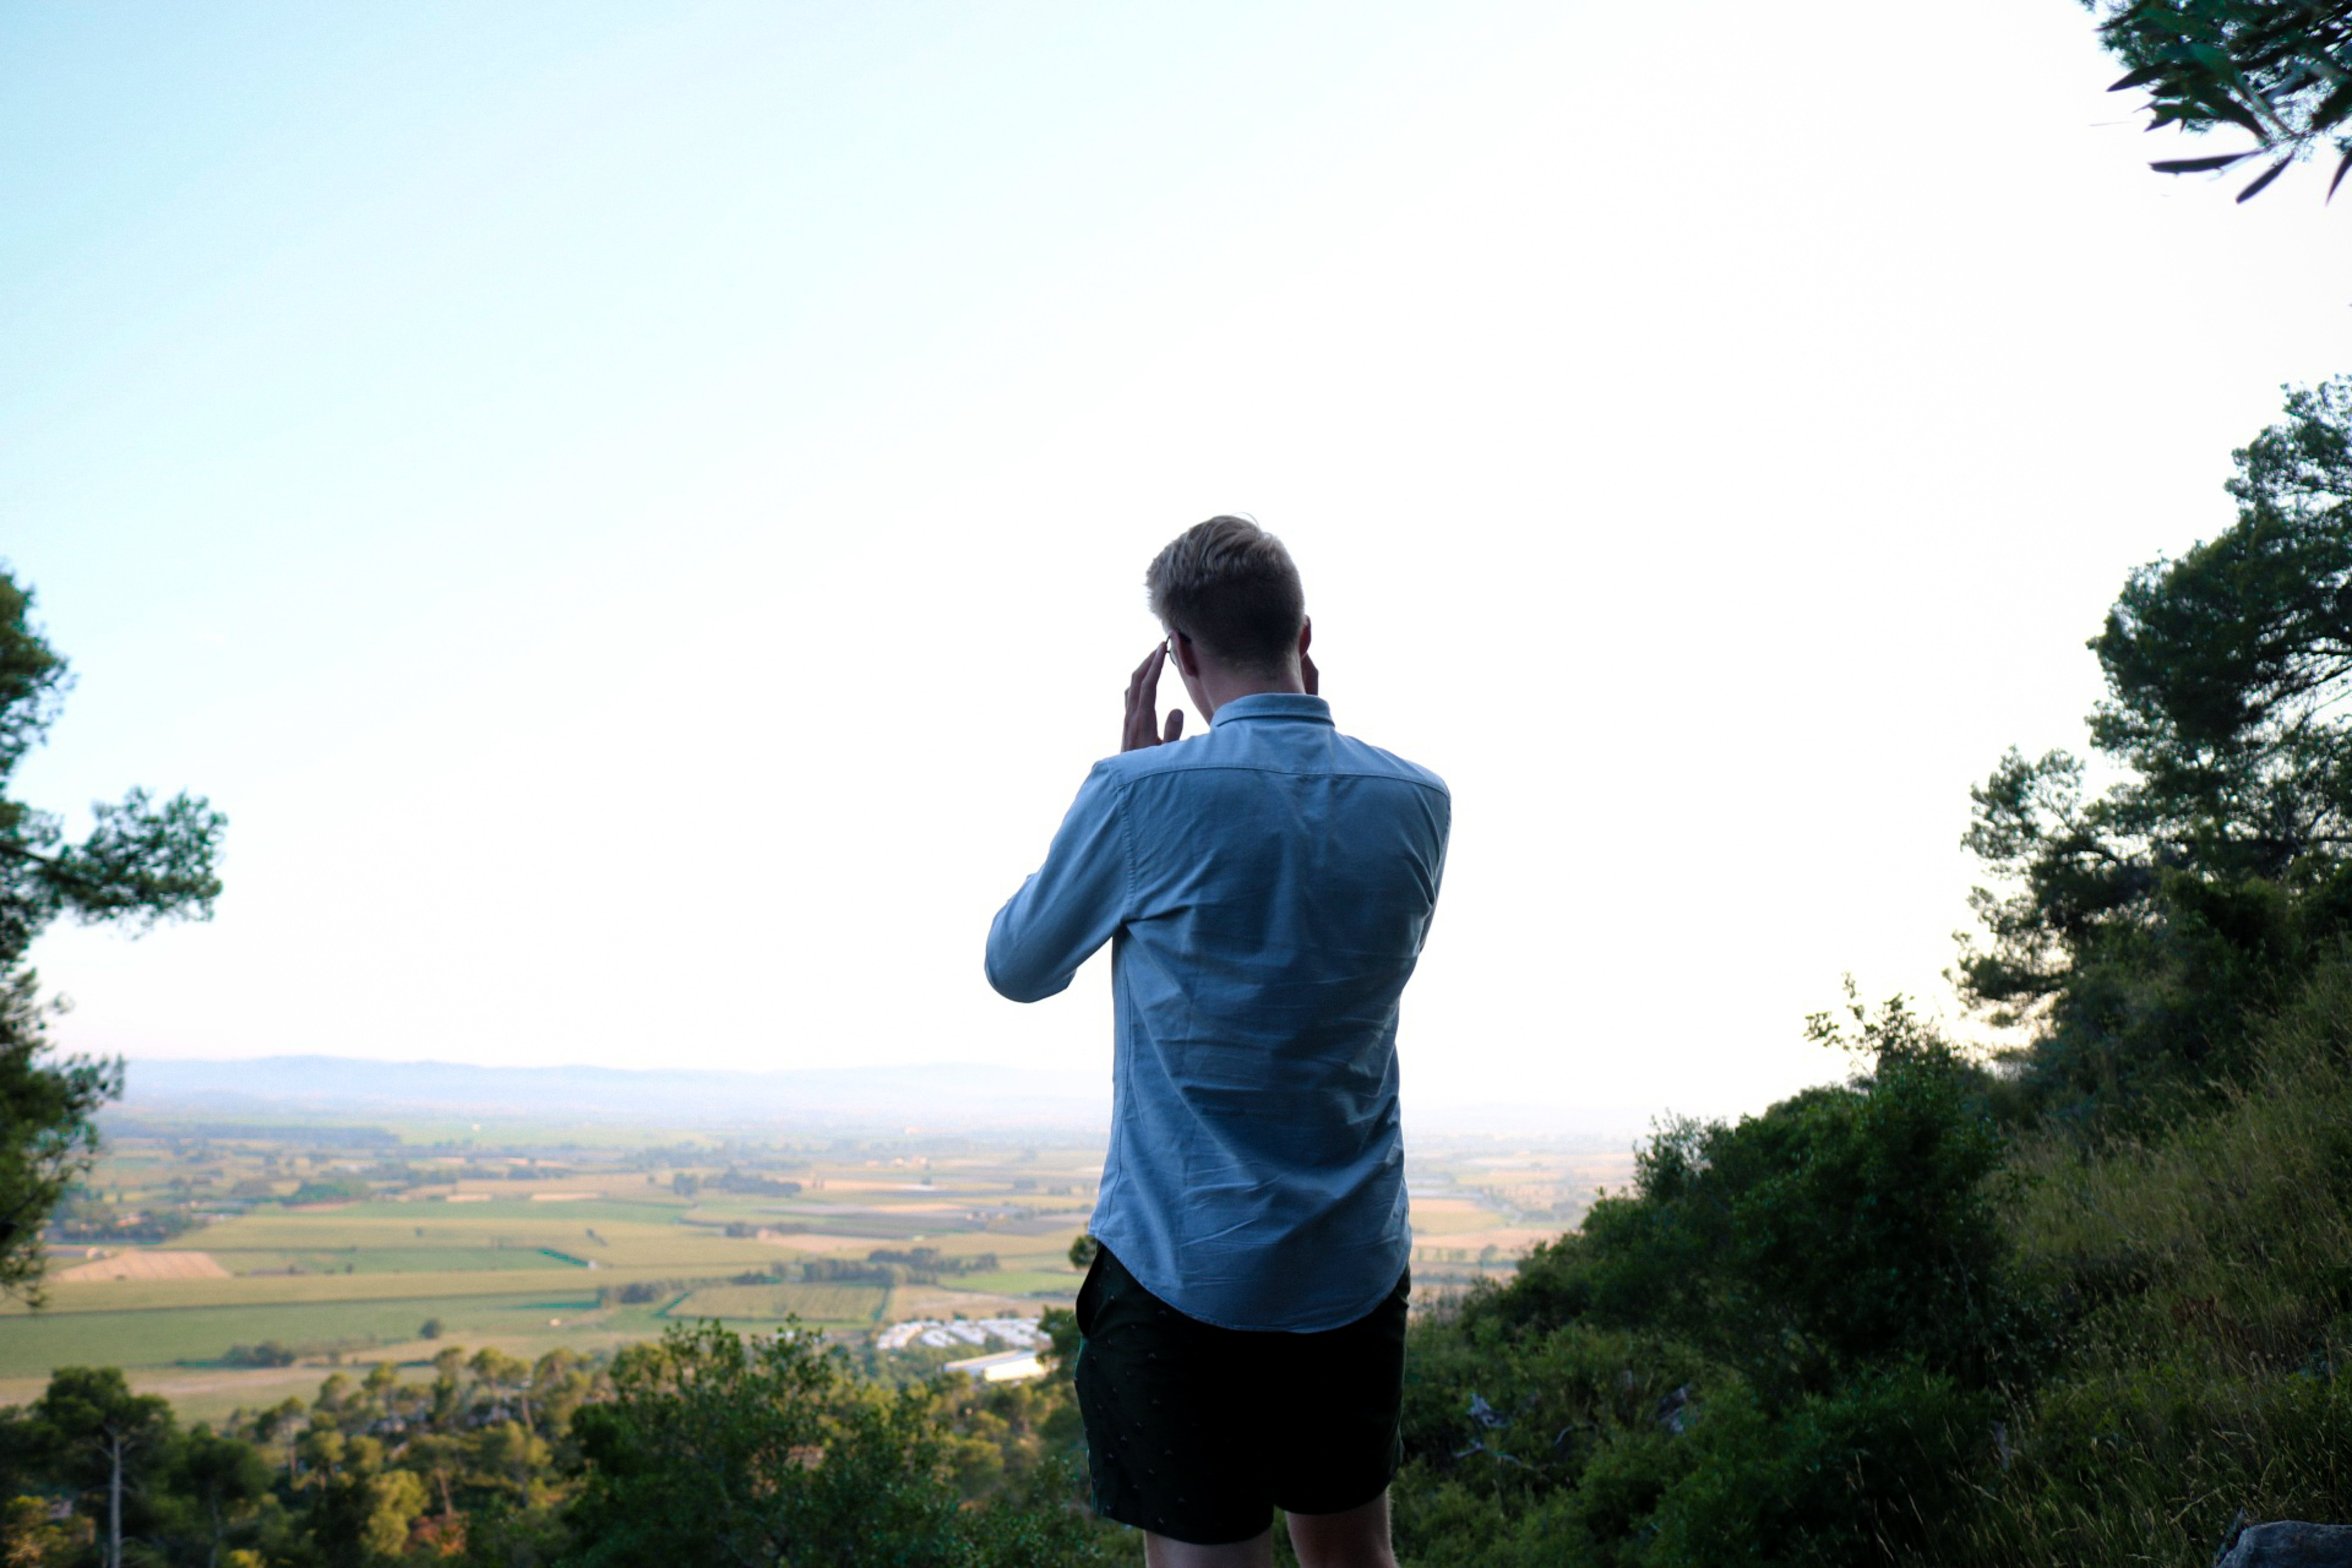 Man in Blue Dress Shirt Standing in Front of Landscape